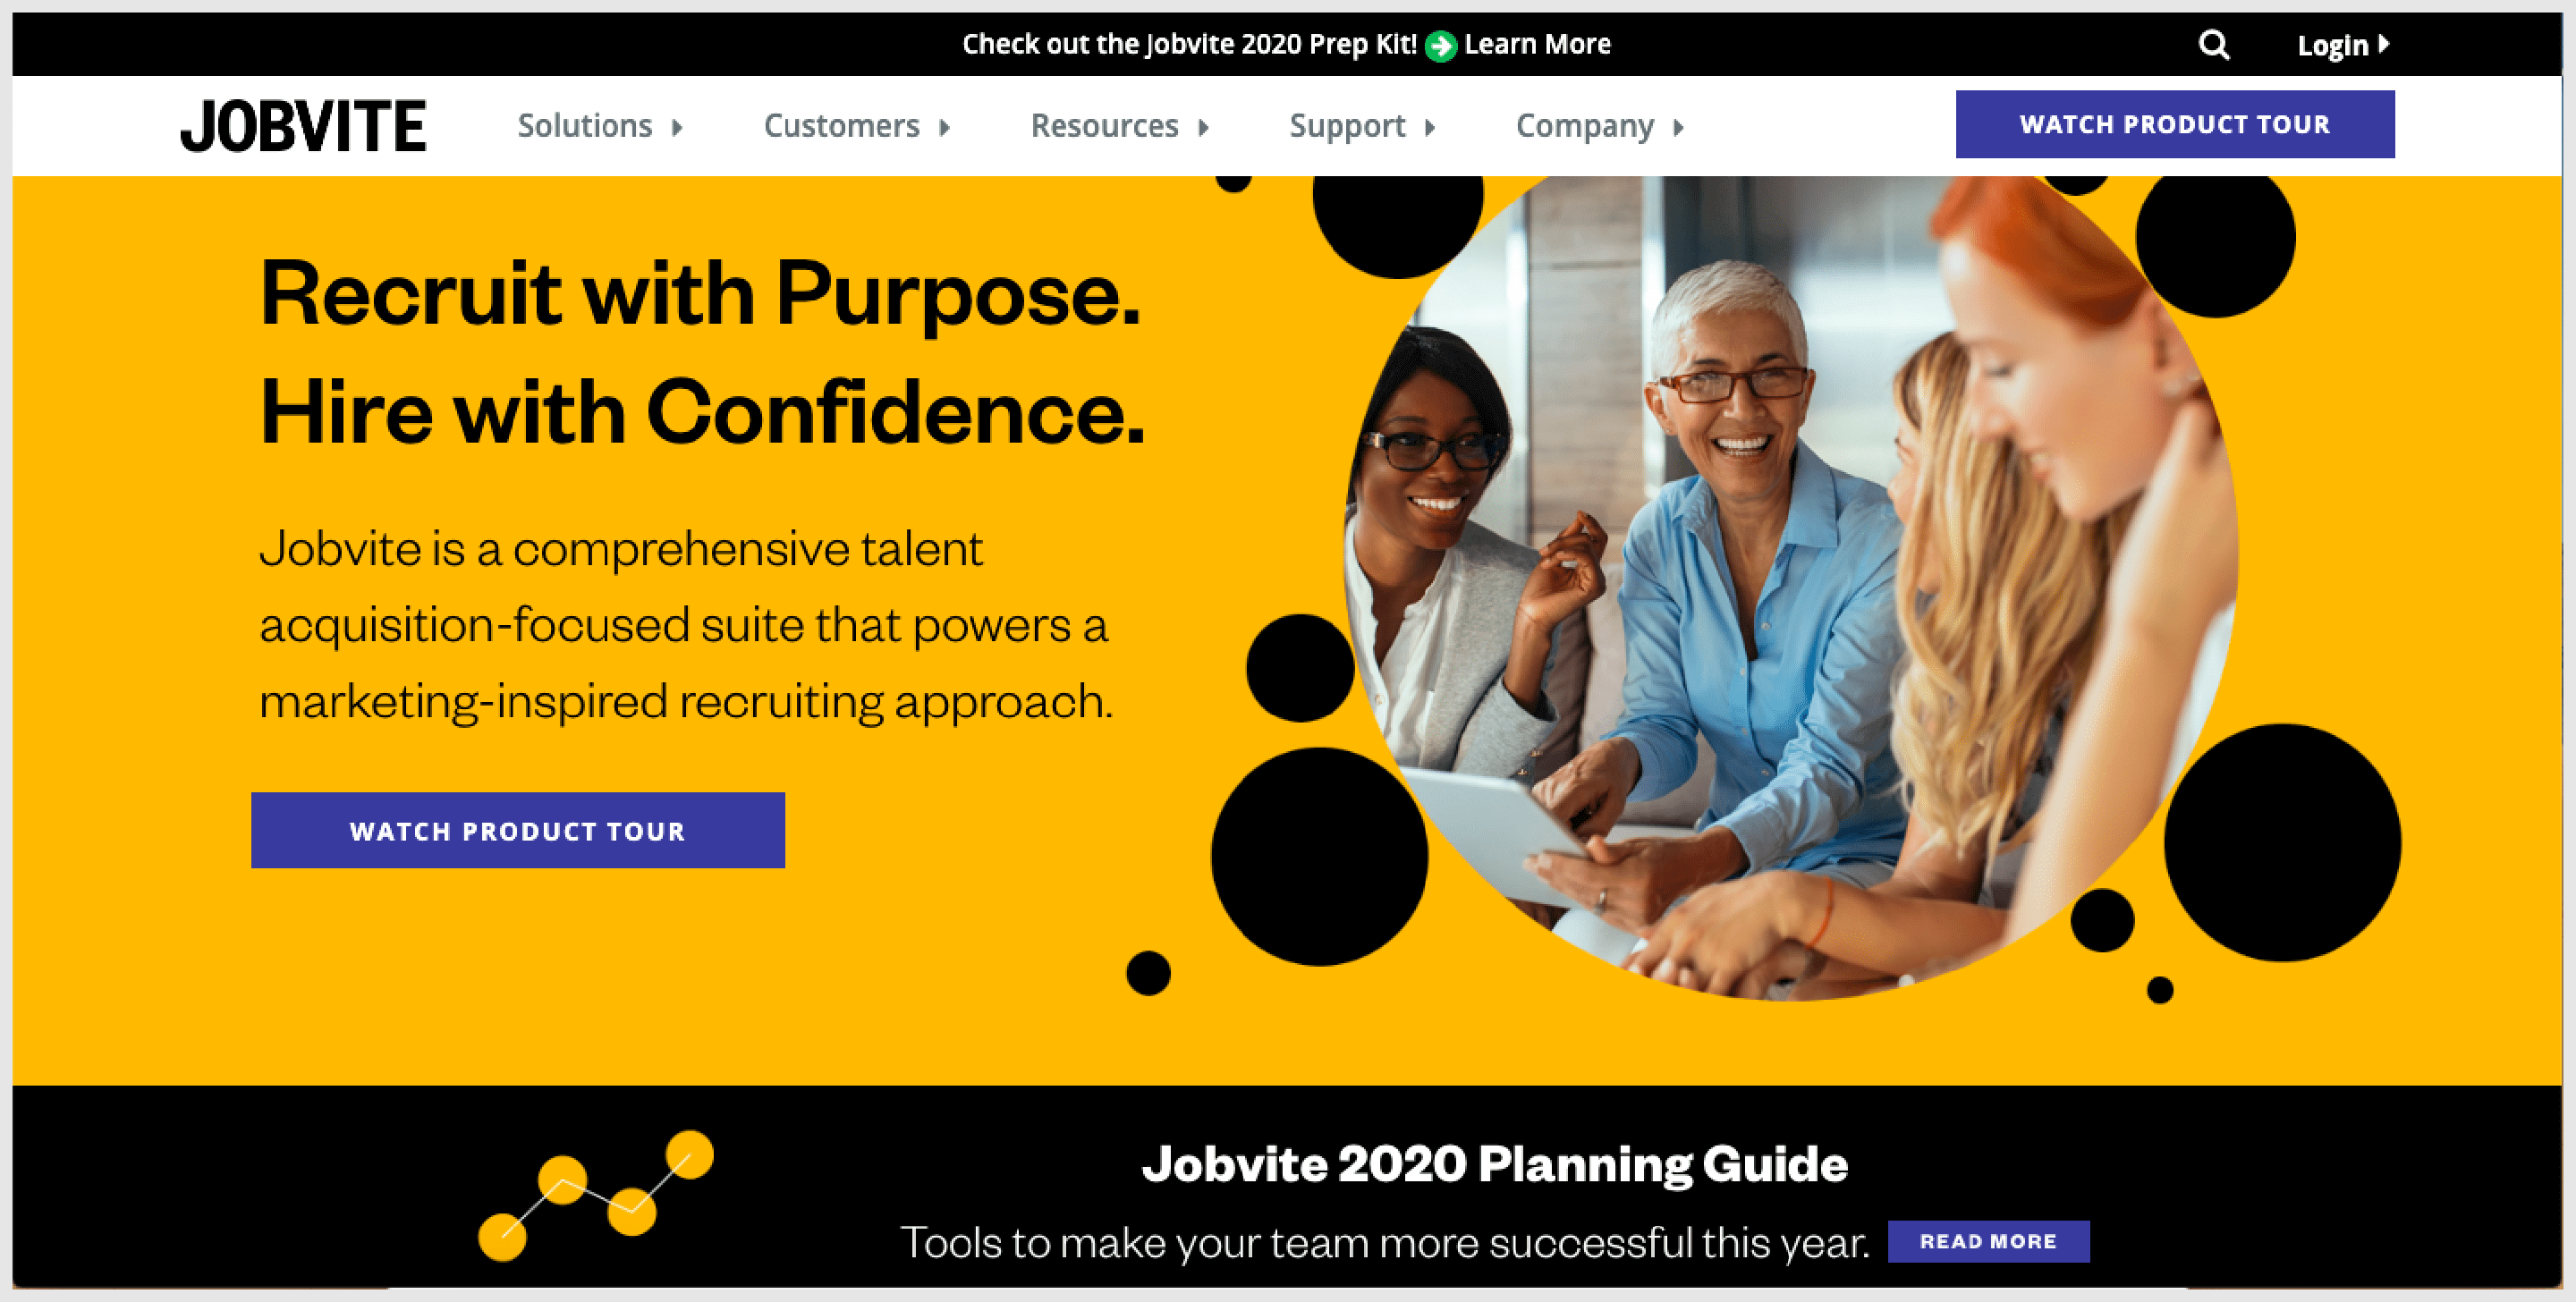 Jobvite is one of the best recruitment tools that follows a marketing-inspired recruiting approach.